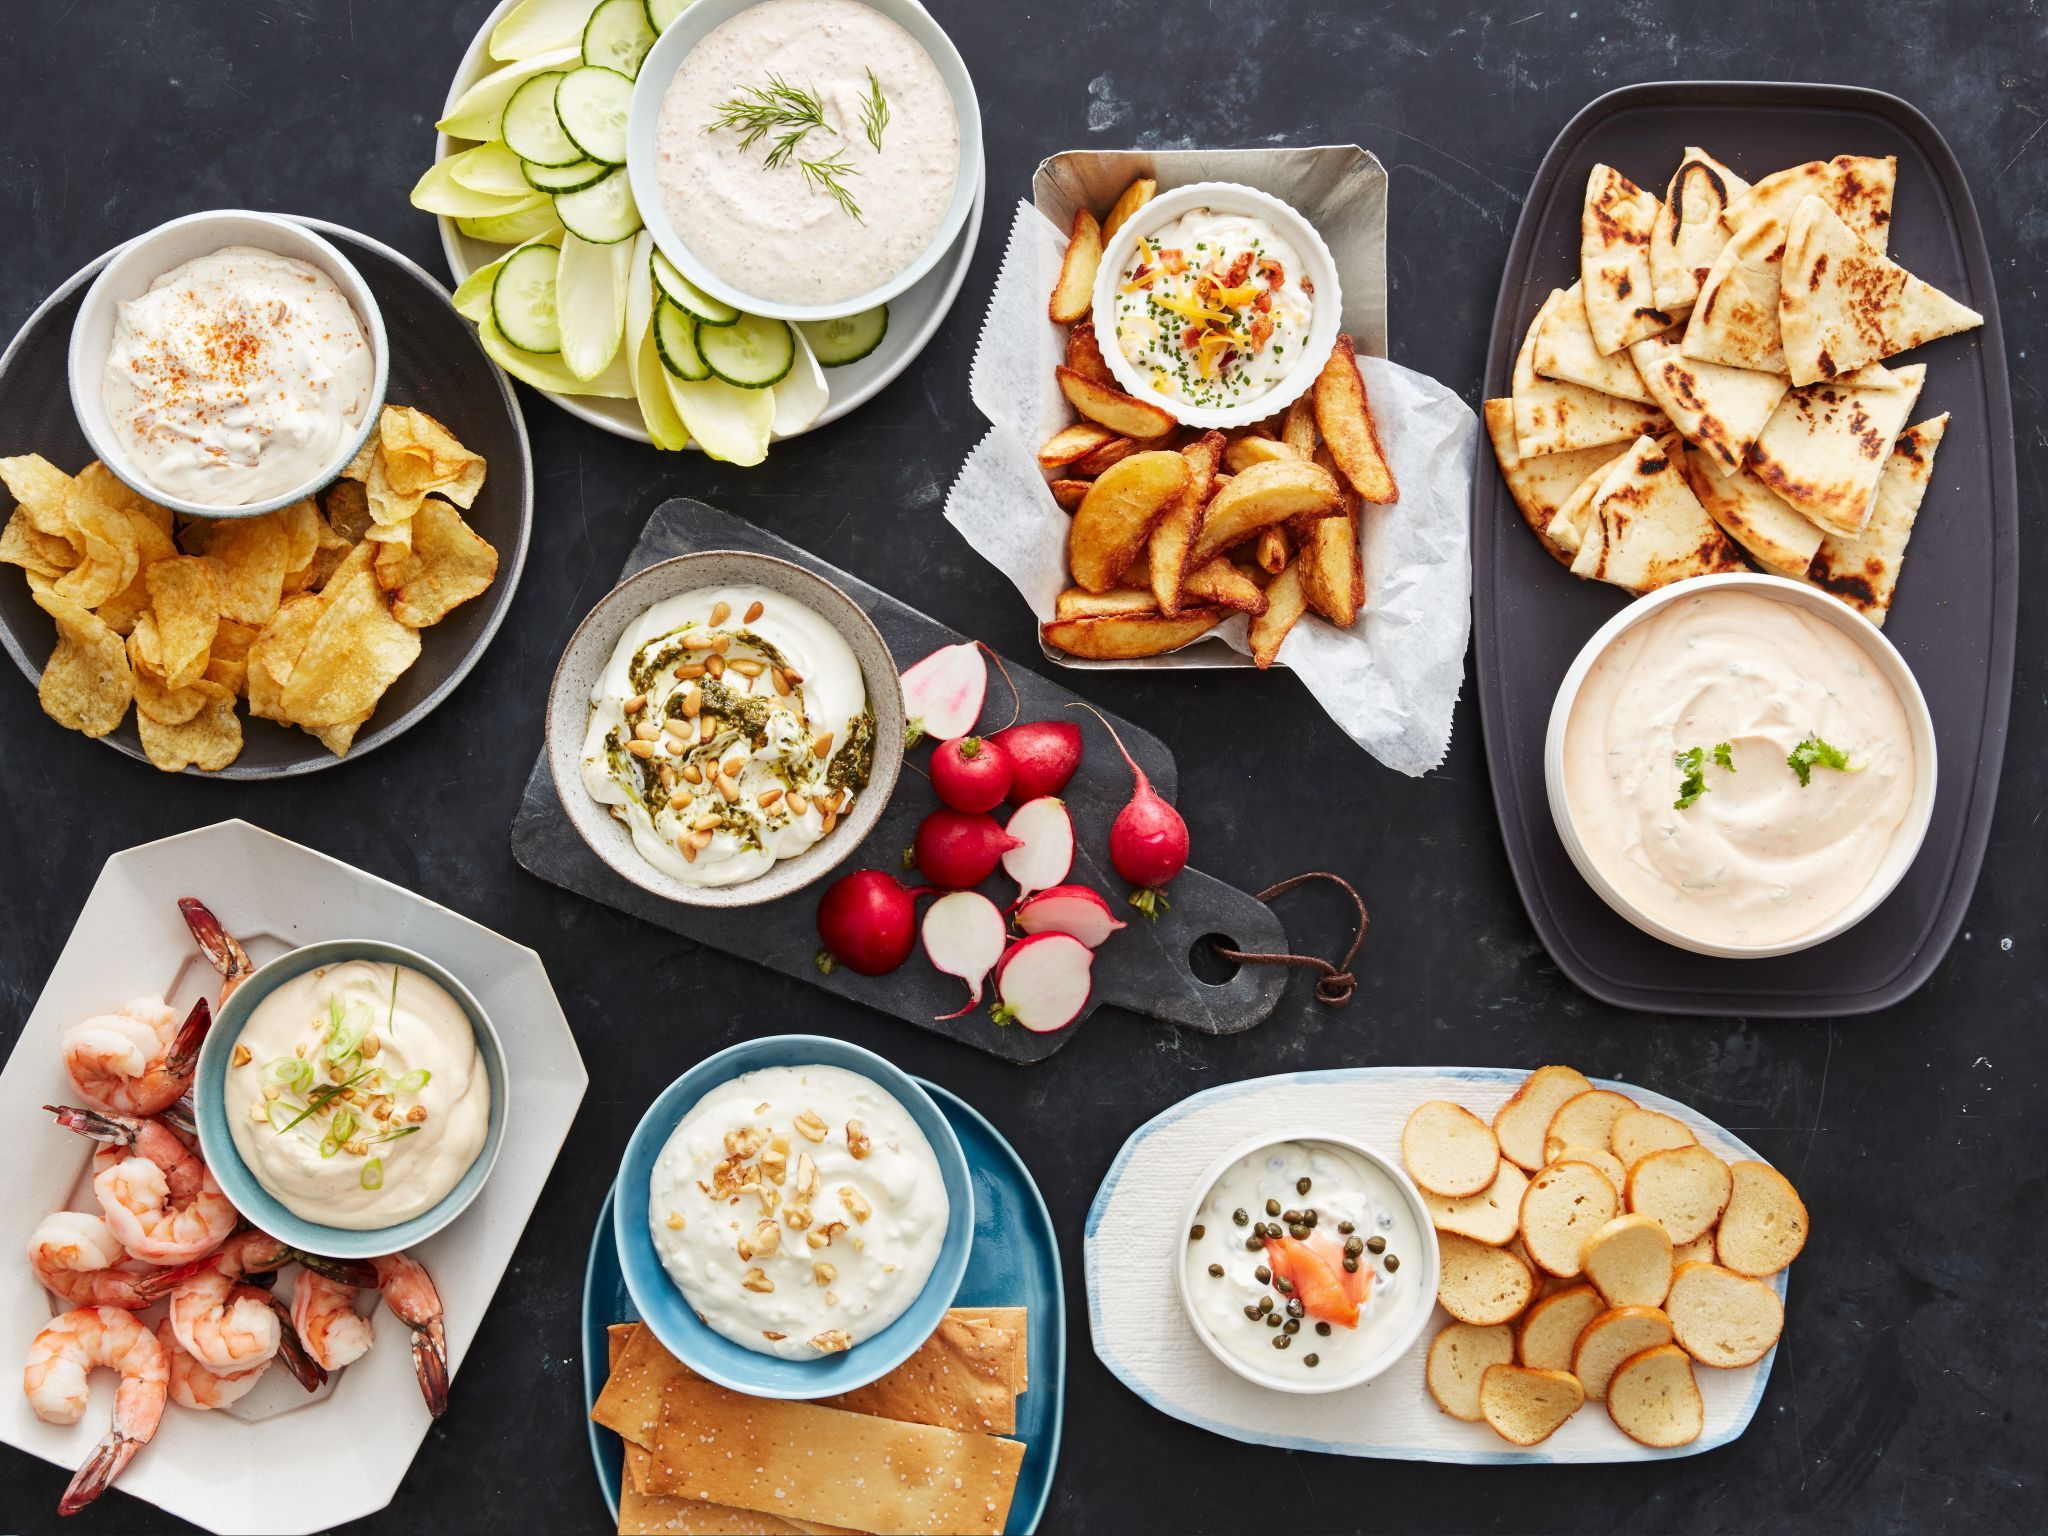 Easy Party Dip Recipes And Ideas Food Network Food Network